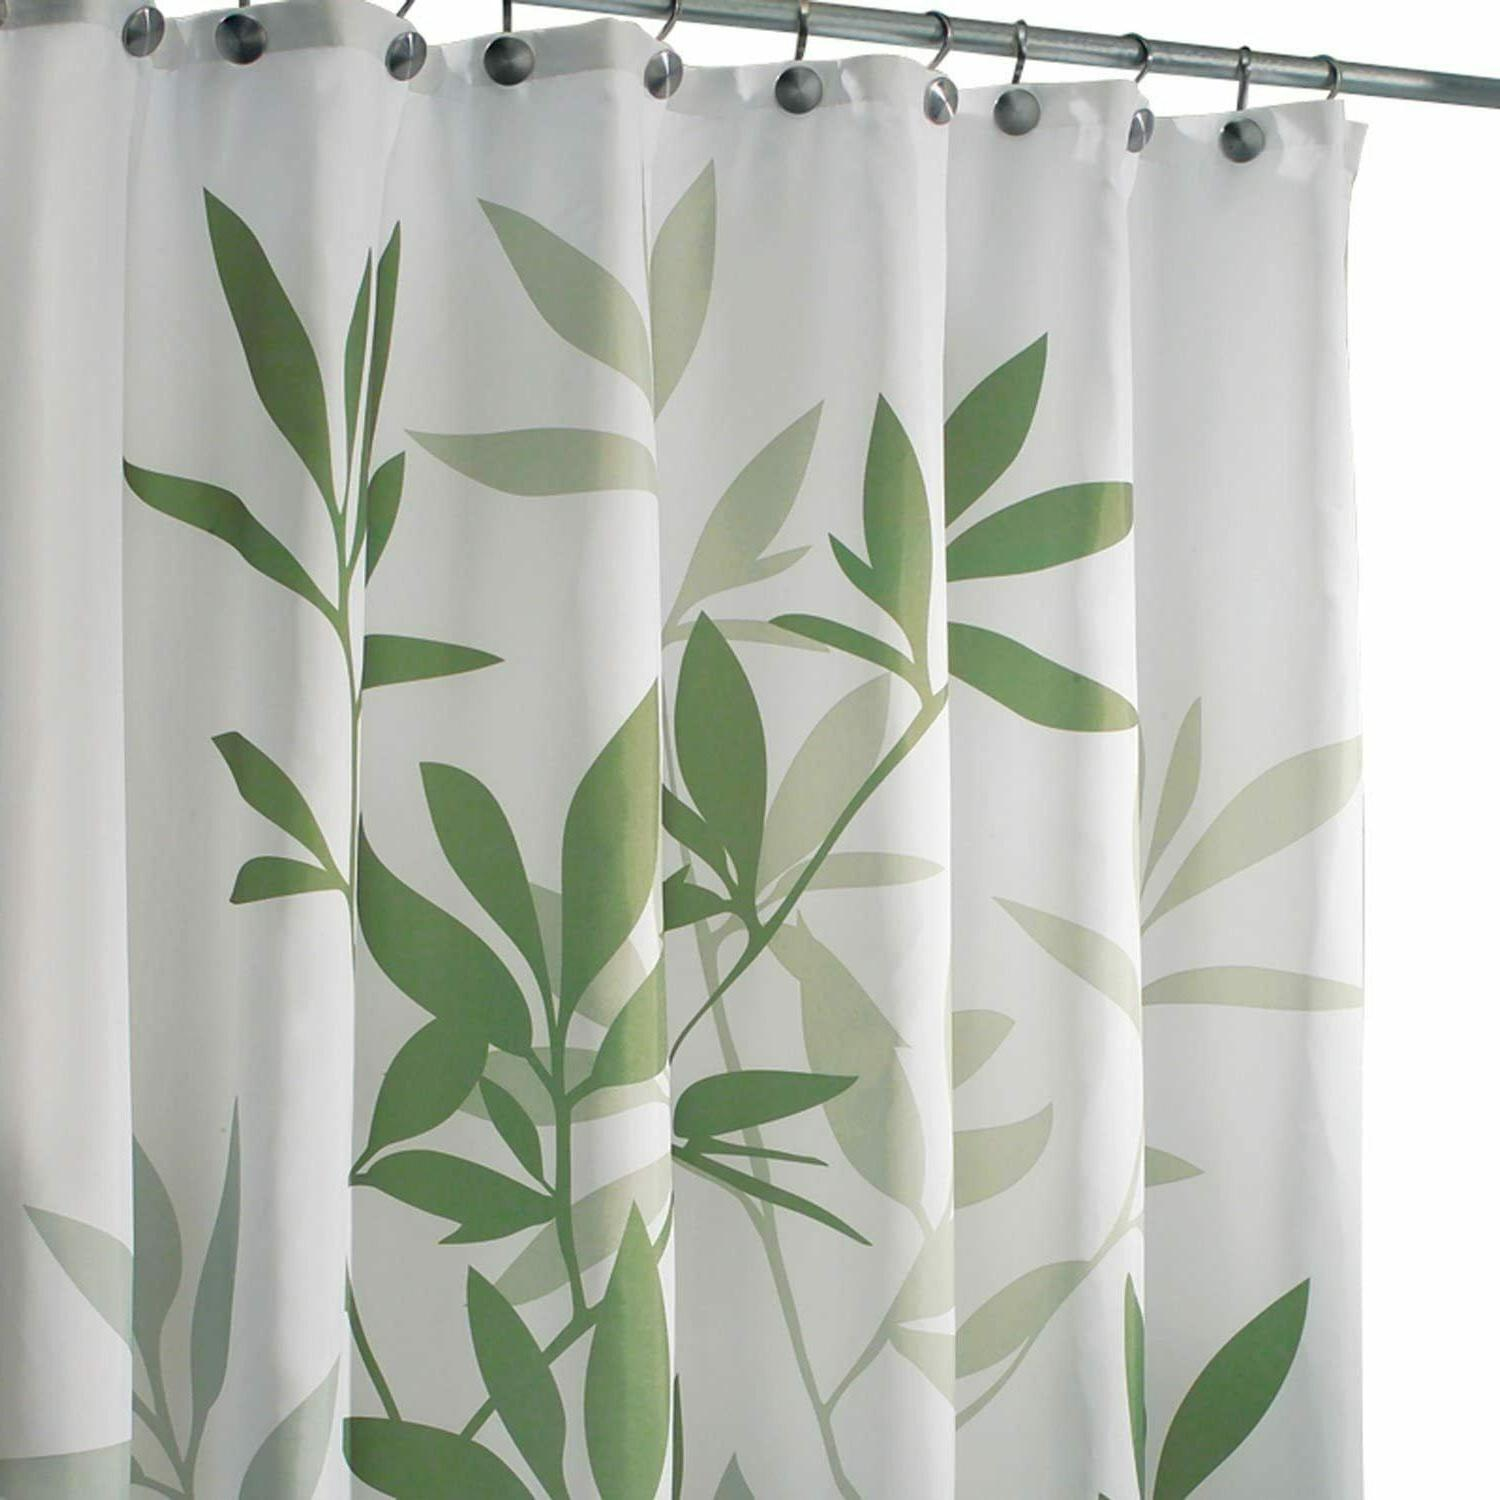 96-Inch Waterproof Long Shower Curtain Liner White